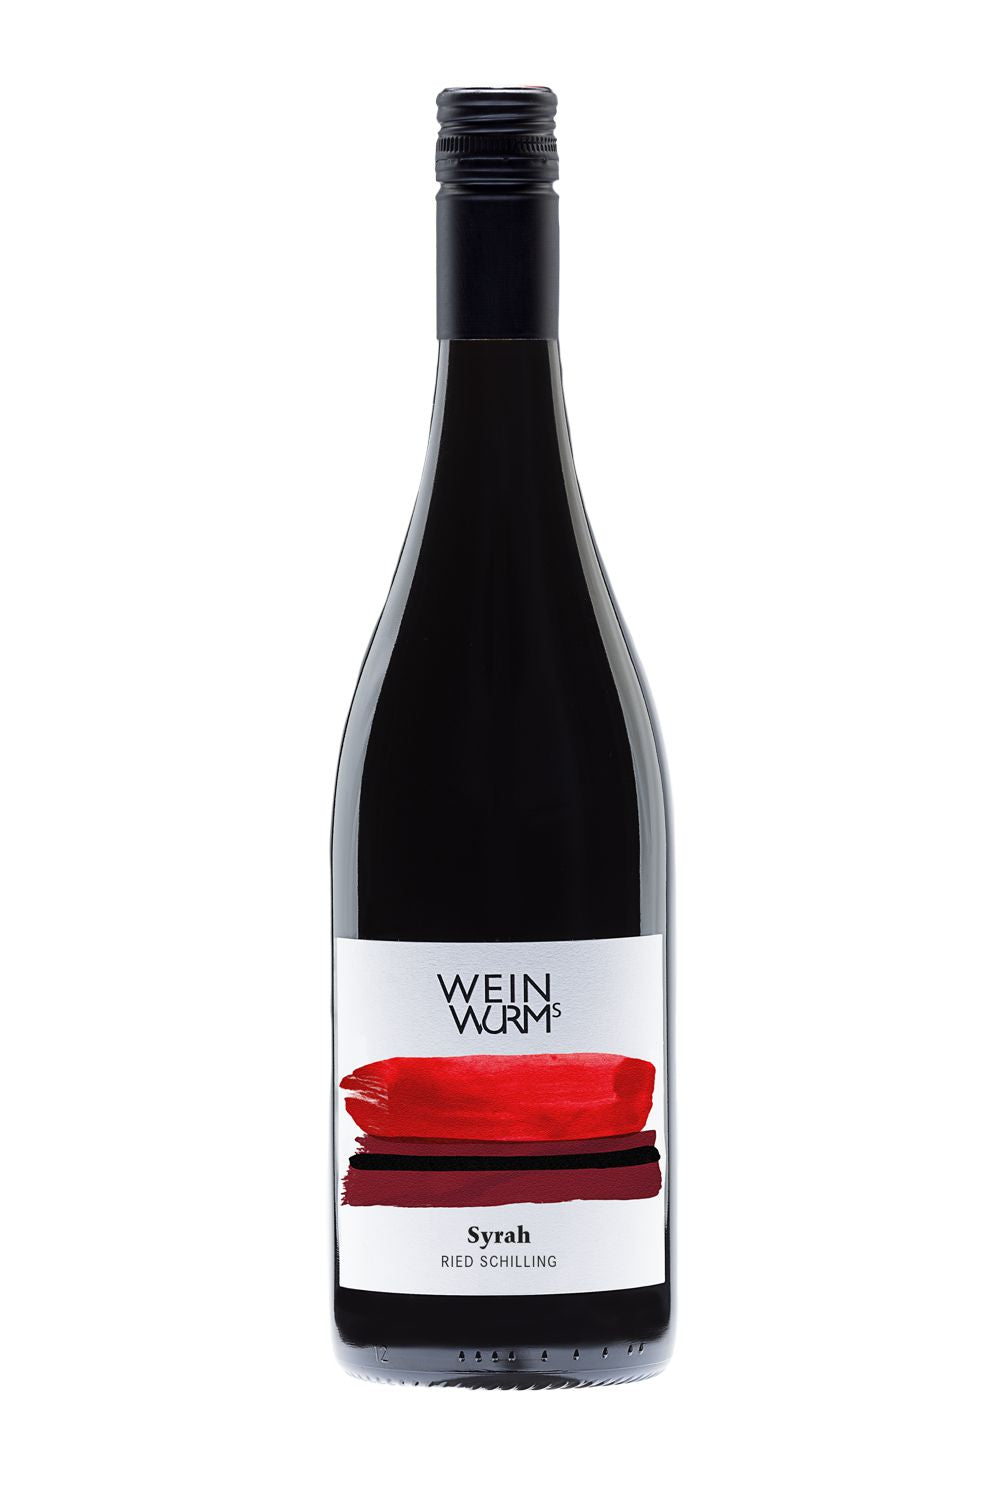 Abendrot SYRAH Ried Schilling 2016